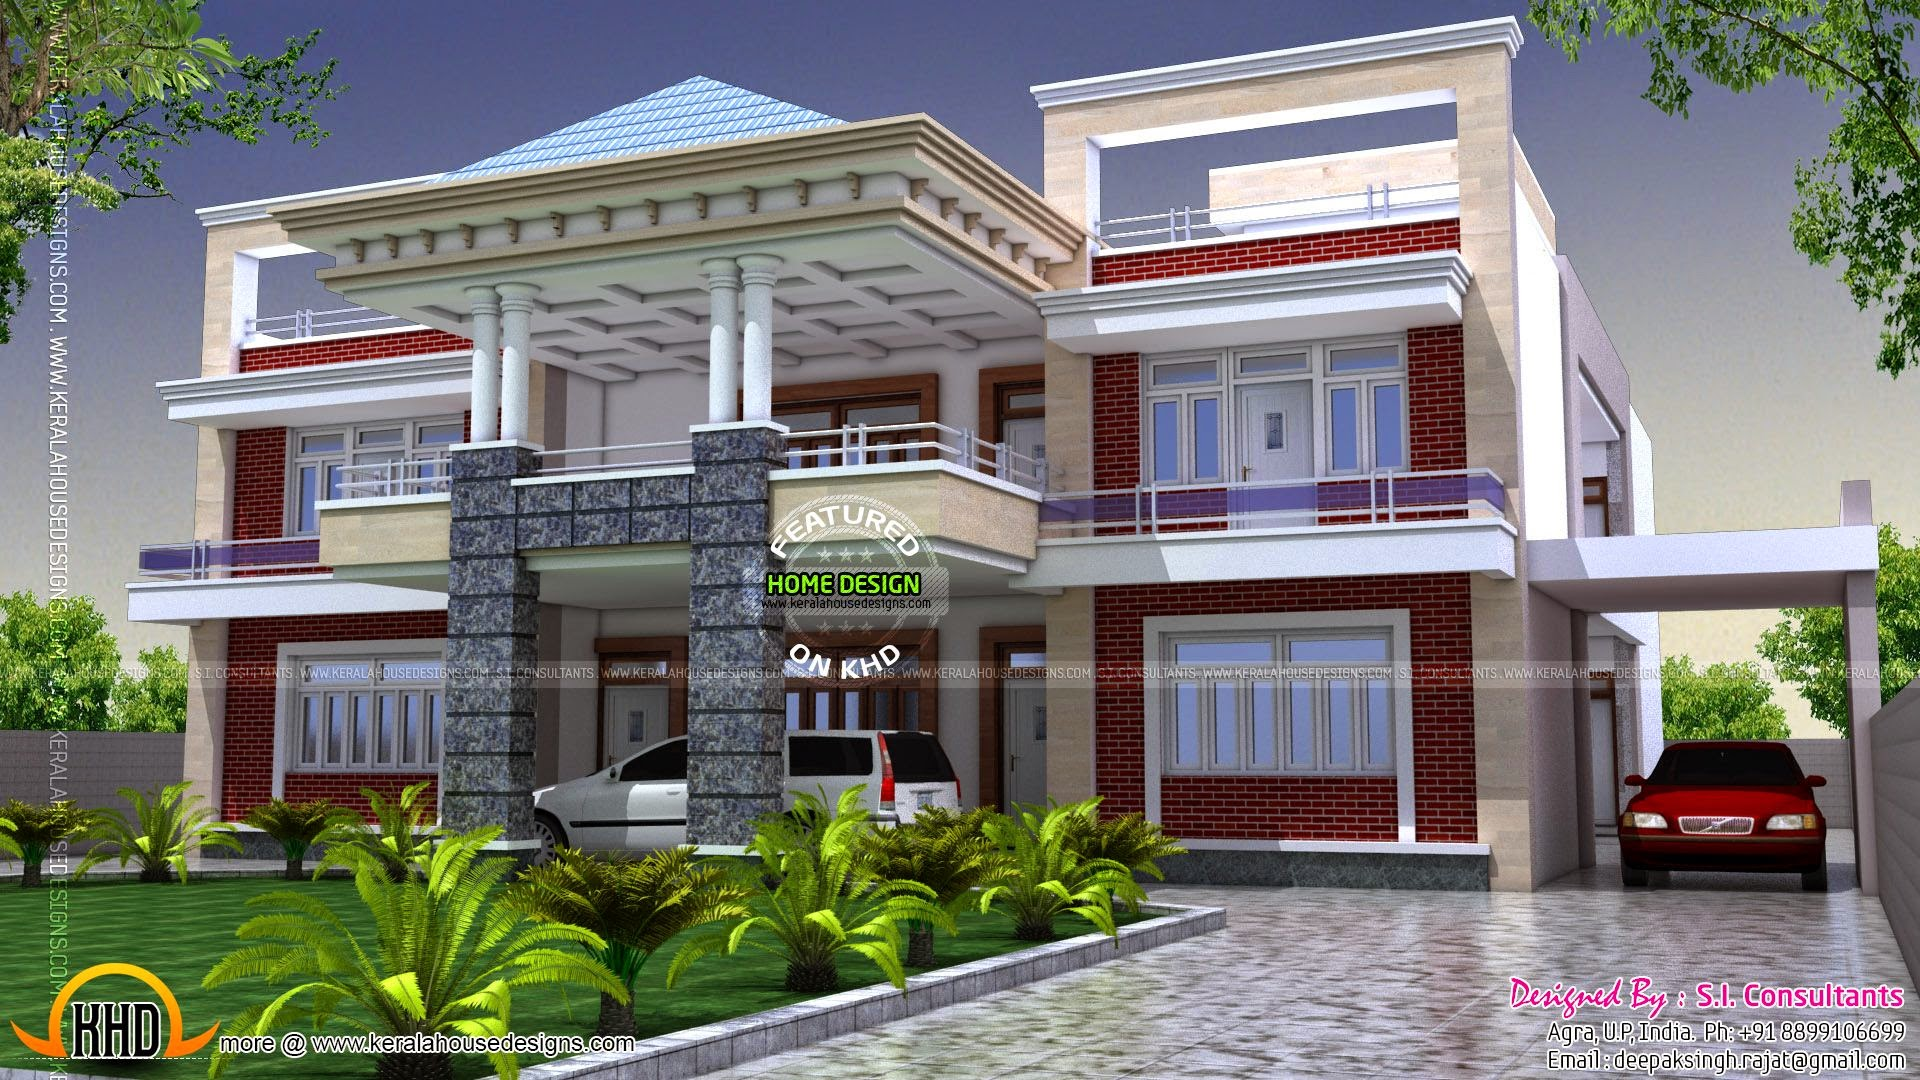 North indian luxury house kerala home design and floor plans for Indian bungalow designs and floor plans